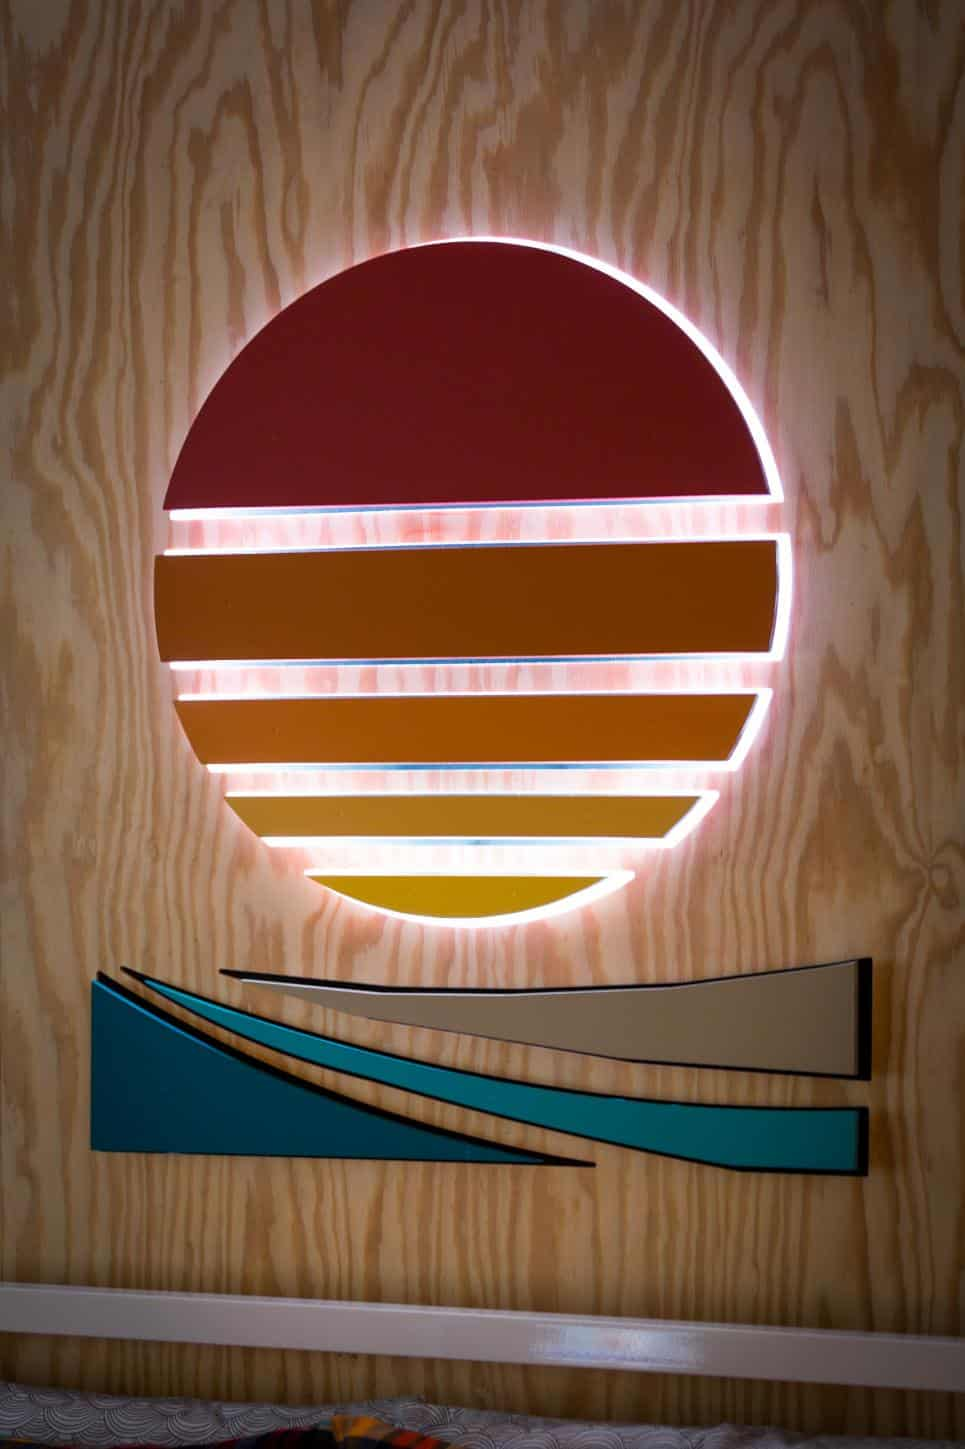 Sun Wall Art and Lighting Fixture by J&J Design Group